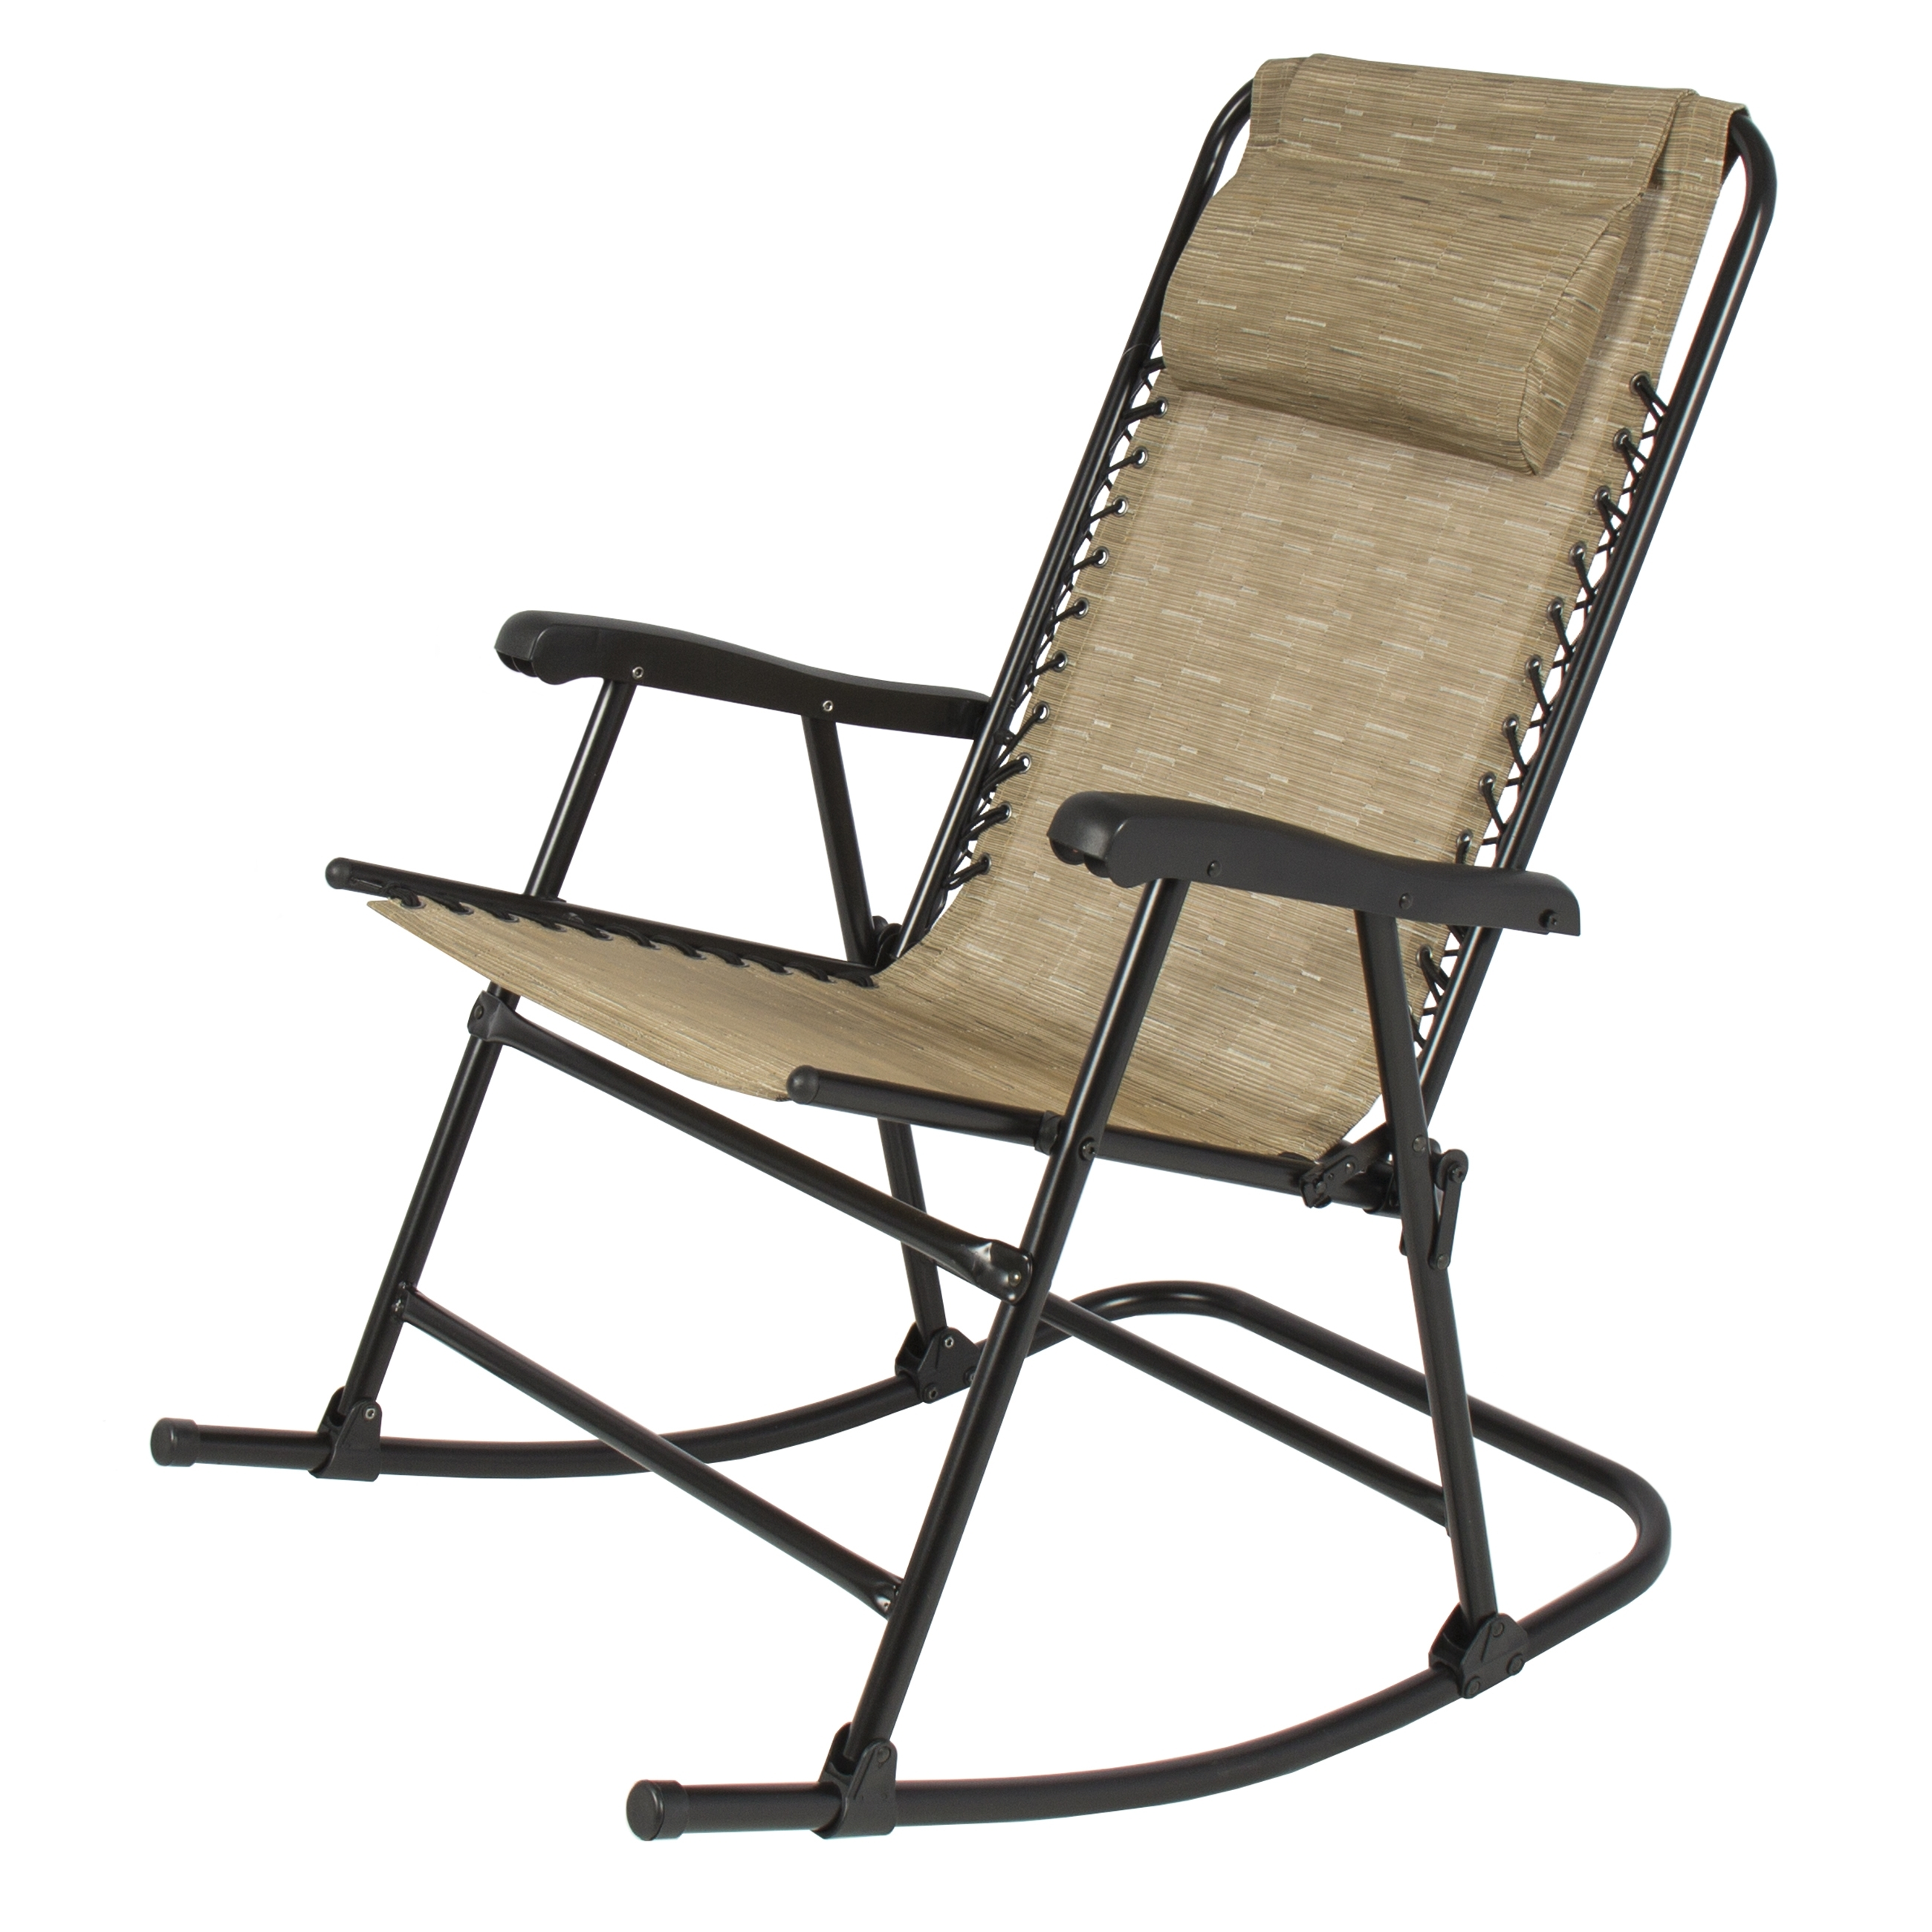 Favorite Rocking Chairs For Porch With Regard To Folding Rocking Chair Foldable Rocker Outdoor Patio Furniture Beige (View 14 of 20)